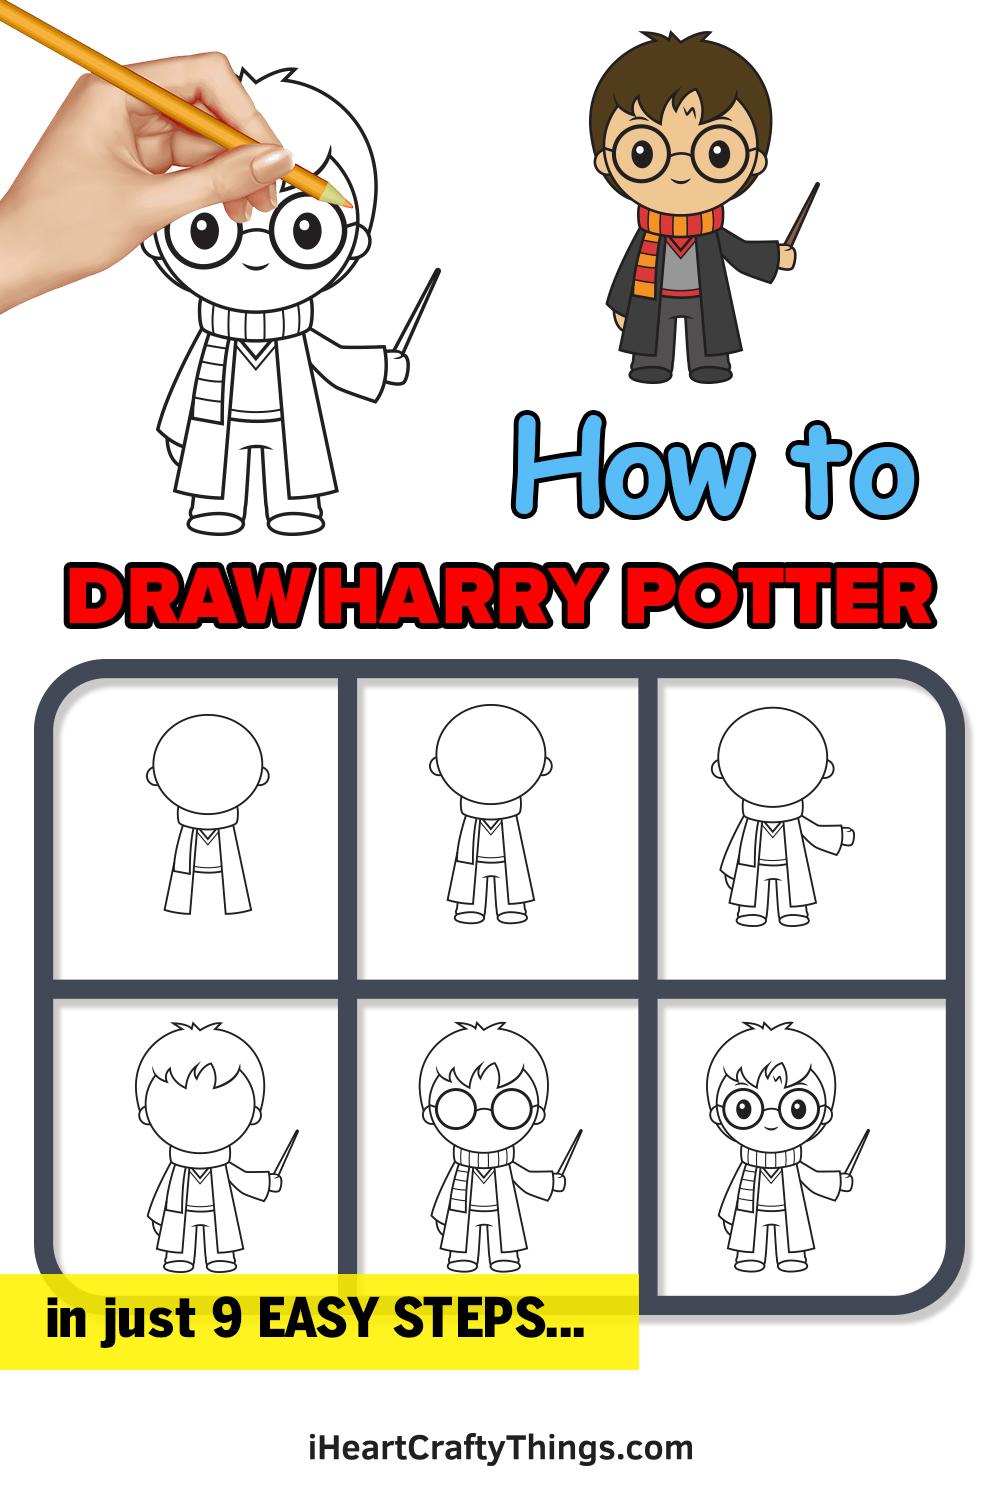 How to Draw Harry Potter in 9 Easy Steps